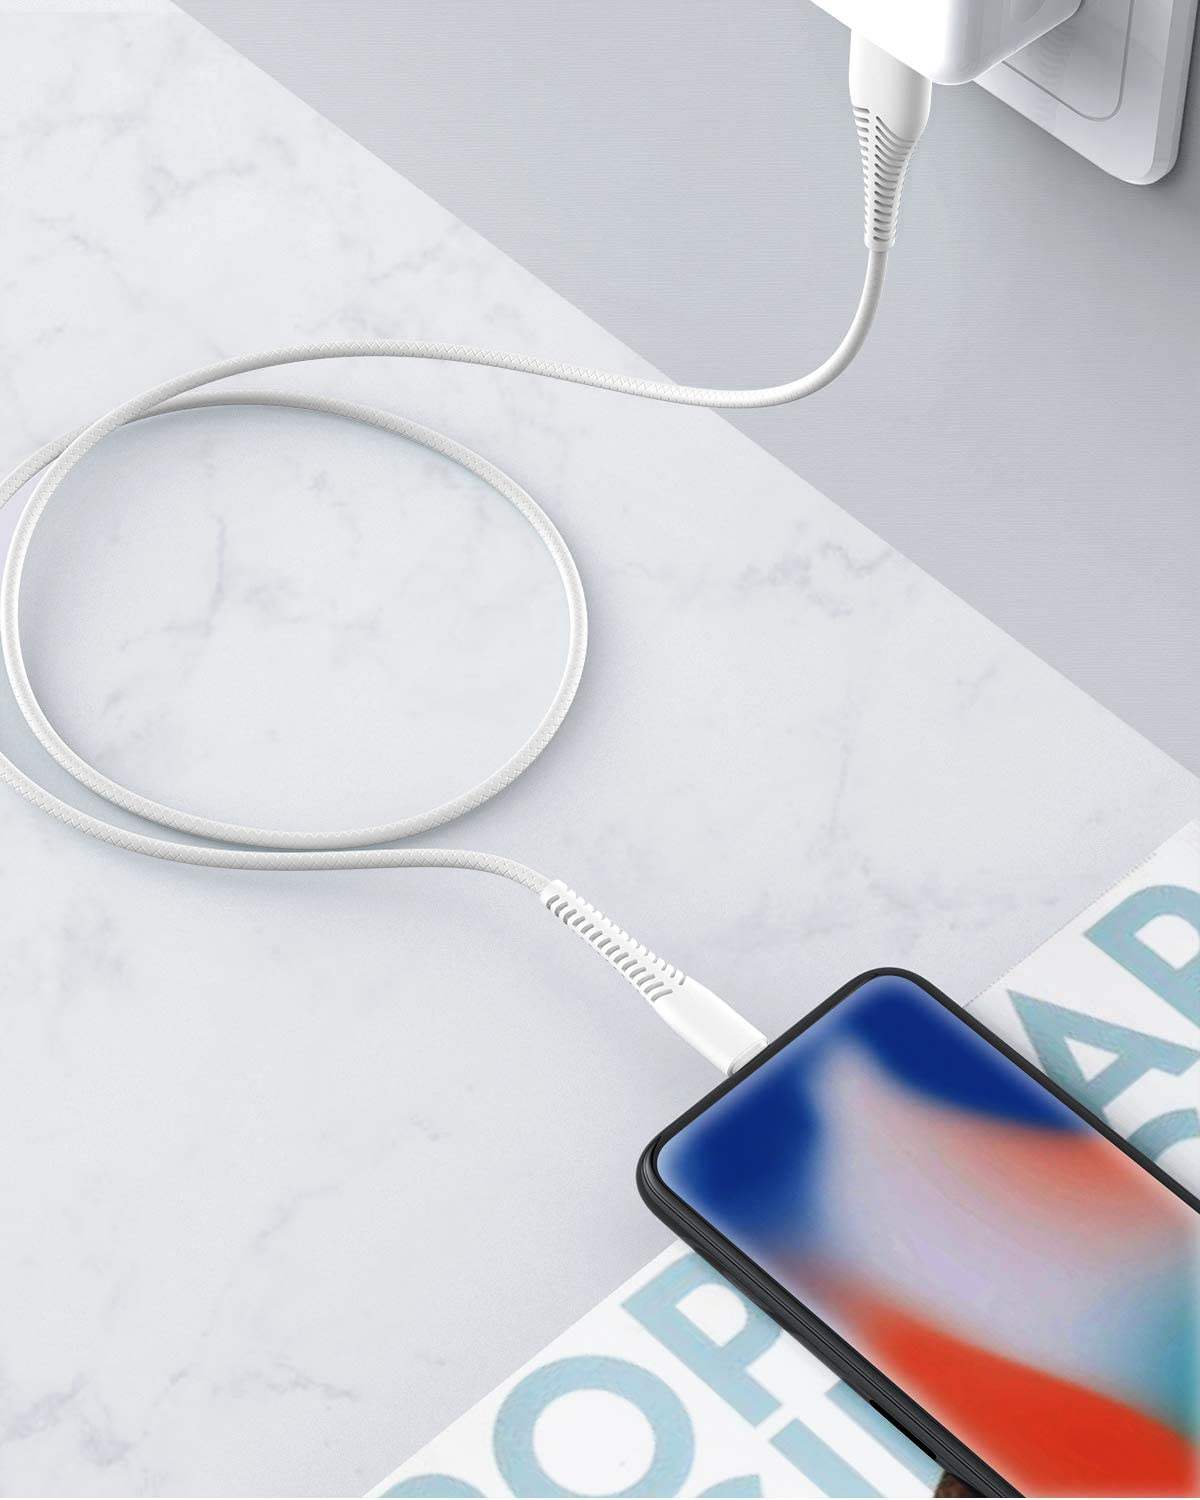 High Fast//Data Sync iPhone Charging Cable Lead for iPhone 11//11Pro//11Max//XS//XR//XS Max//8//7//6//5S//SE iPad White iPhone Charger cable 3M CABEPOW【MFi Certified】2Pack 10ft Long Lightning Cable